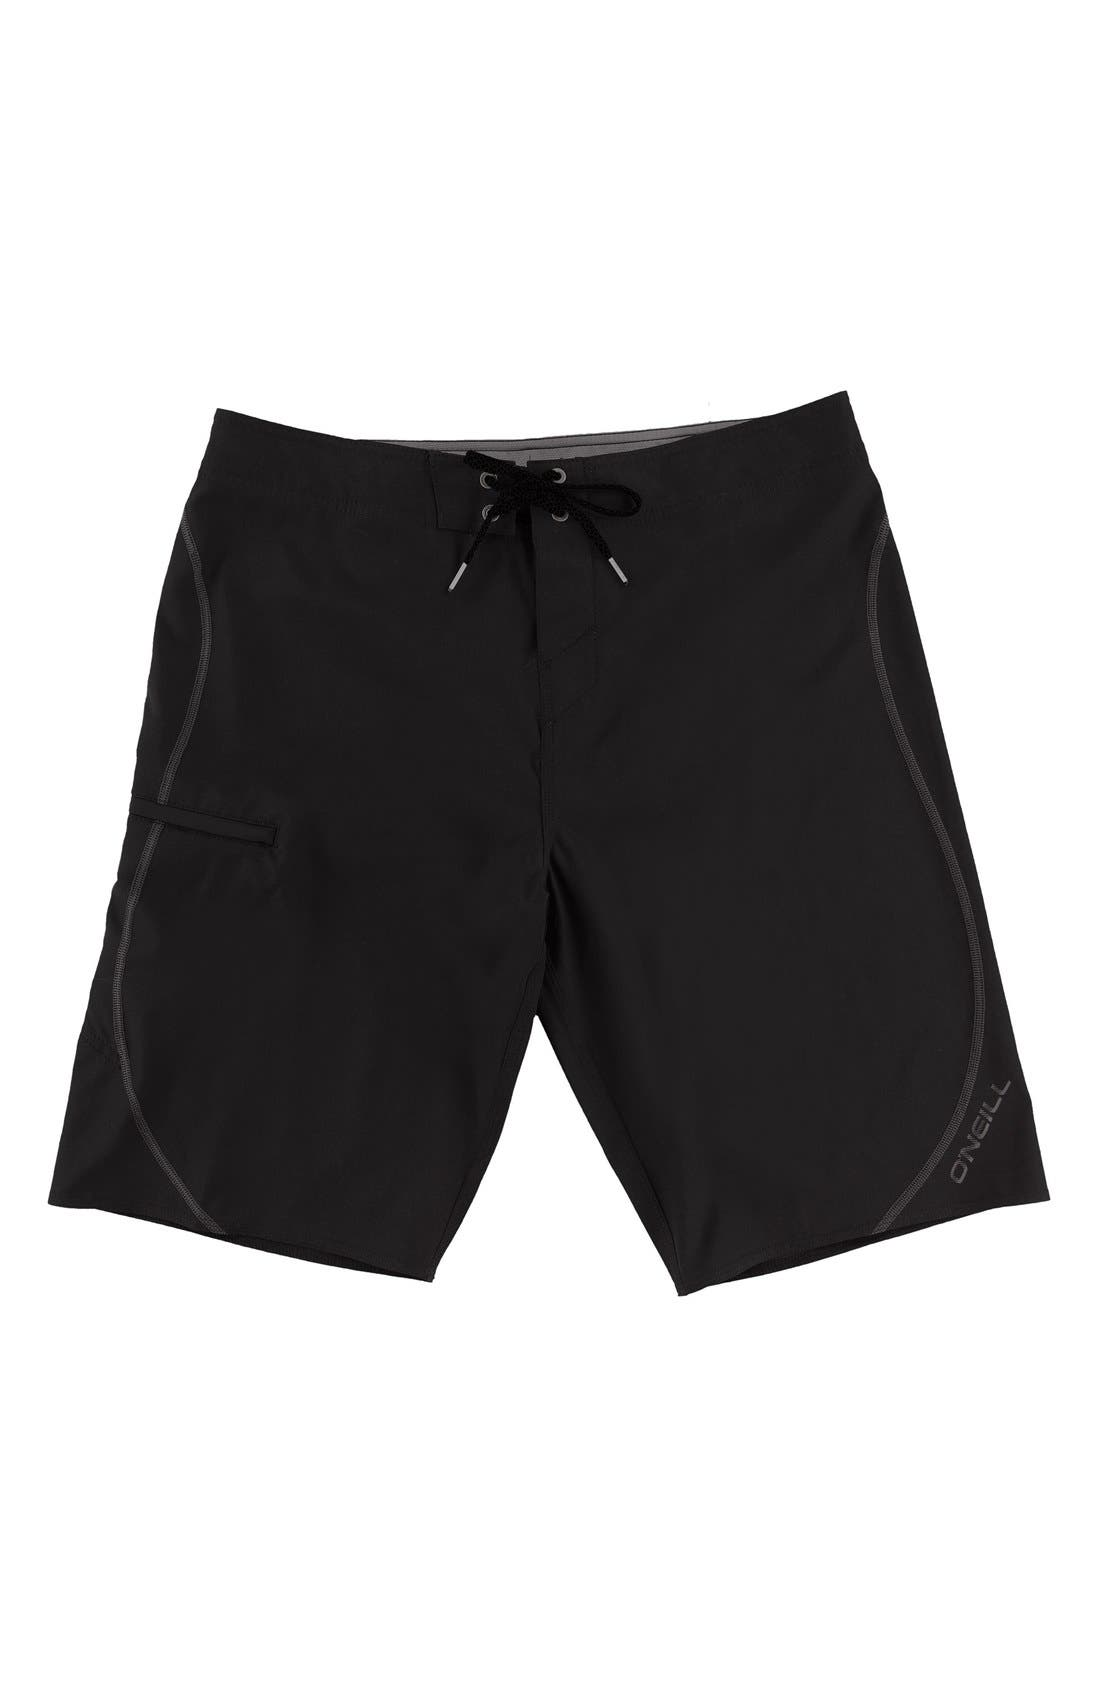 Main Image - O'Neill Hyperfreak S-Seam Stretch Board Shorts (Big Boys)